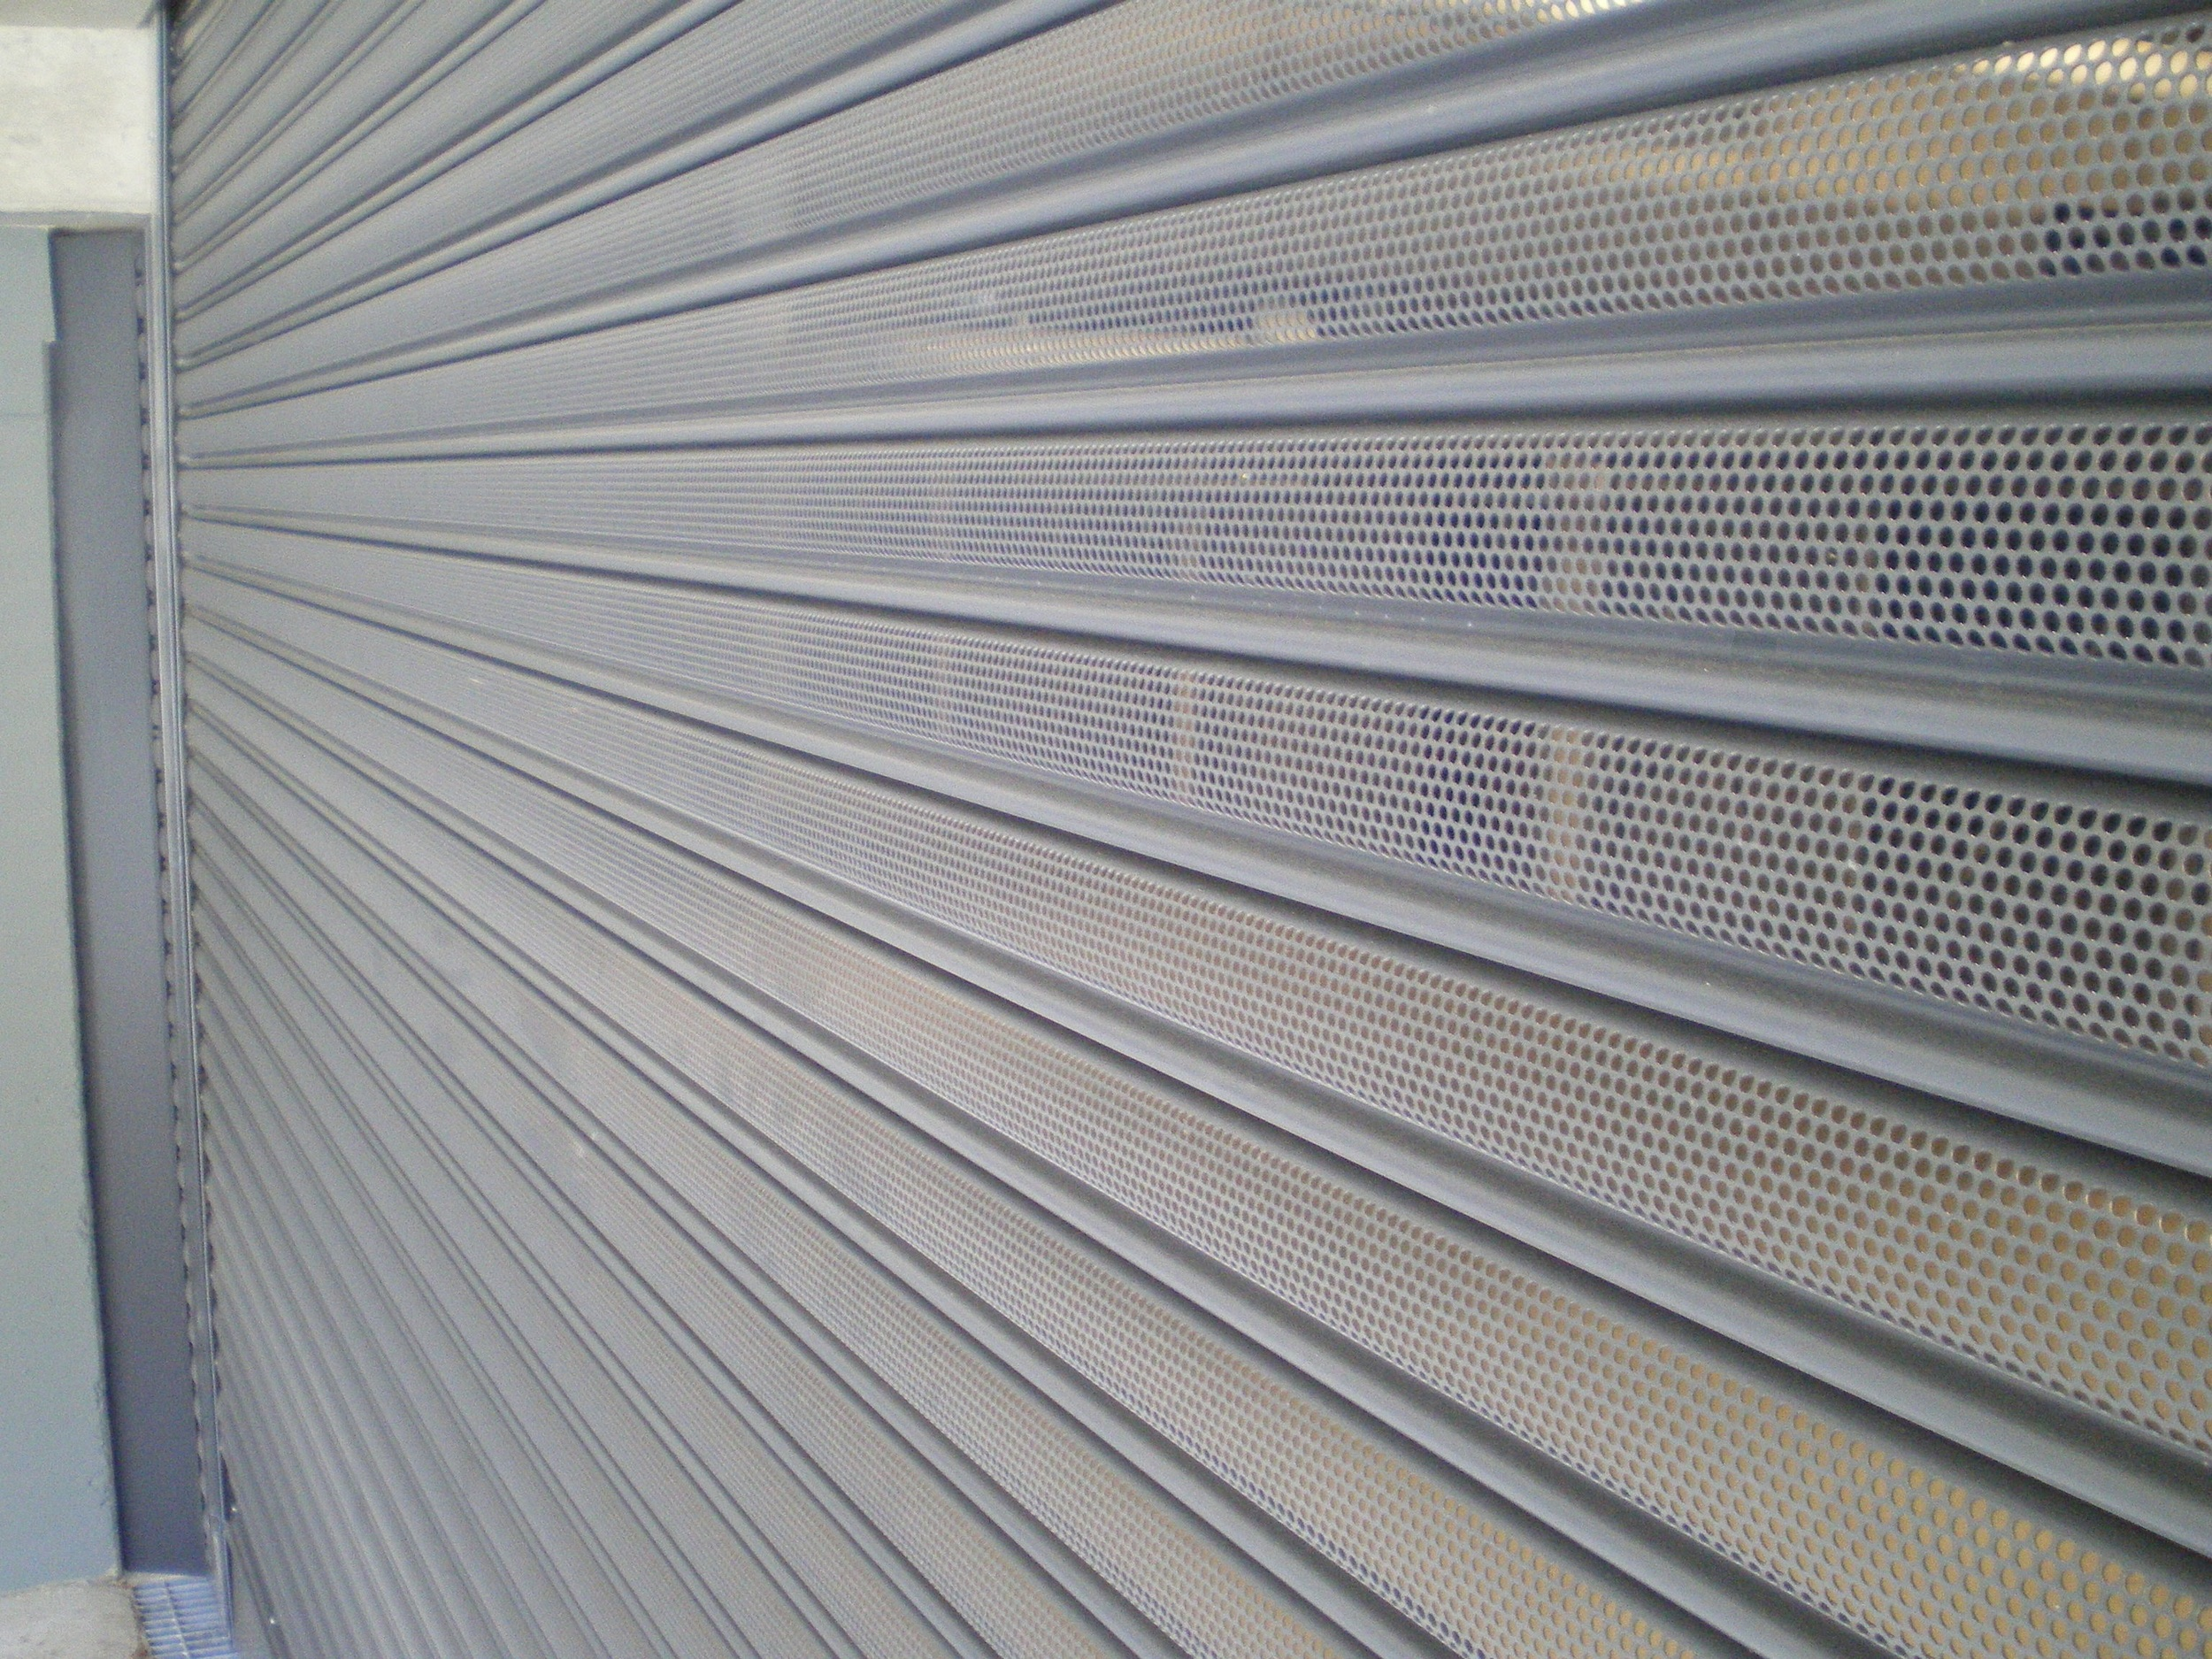 Perforated Powder Coated Roller Shutter (one click on image to enlarge)